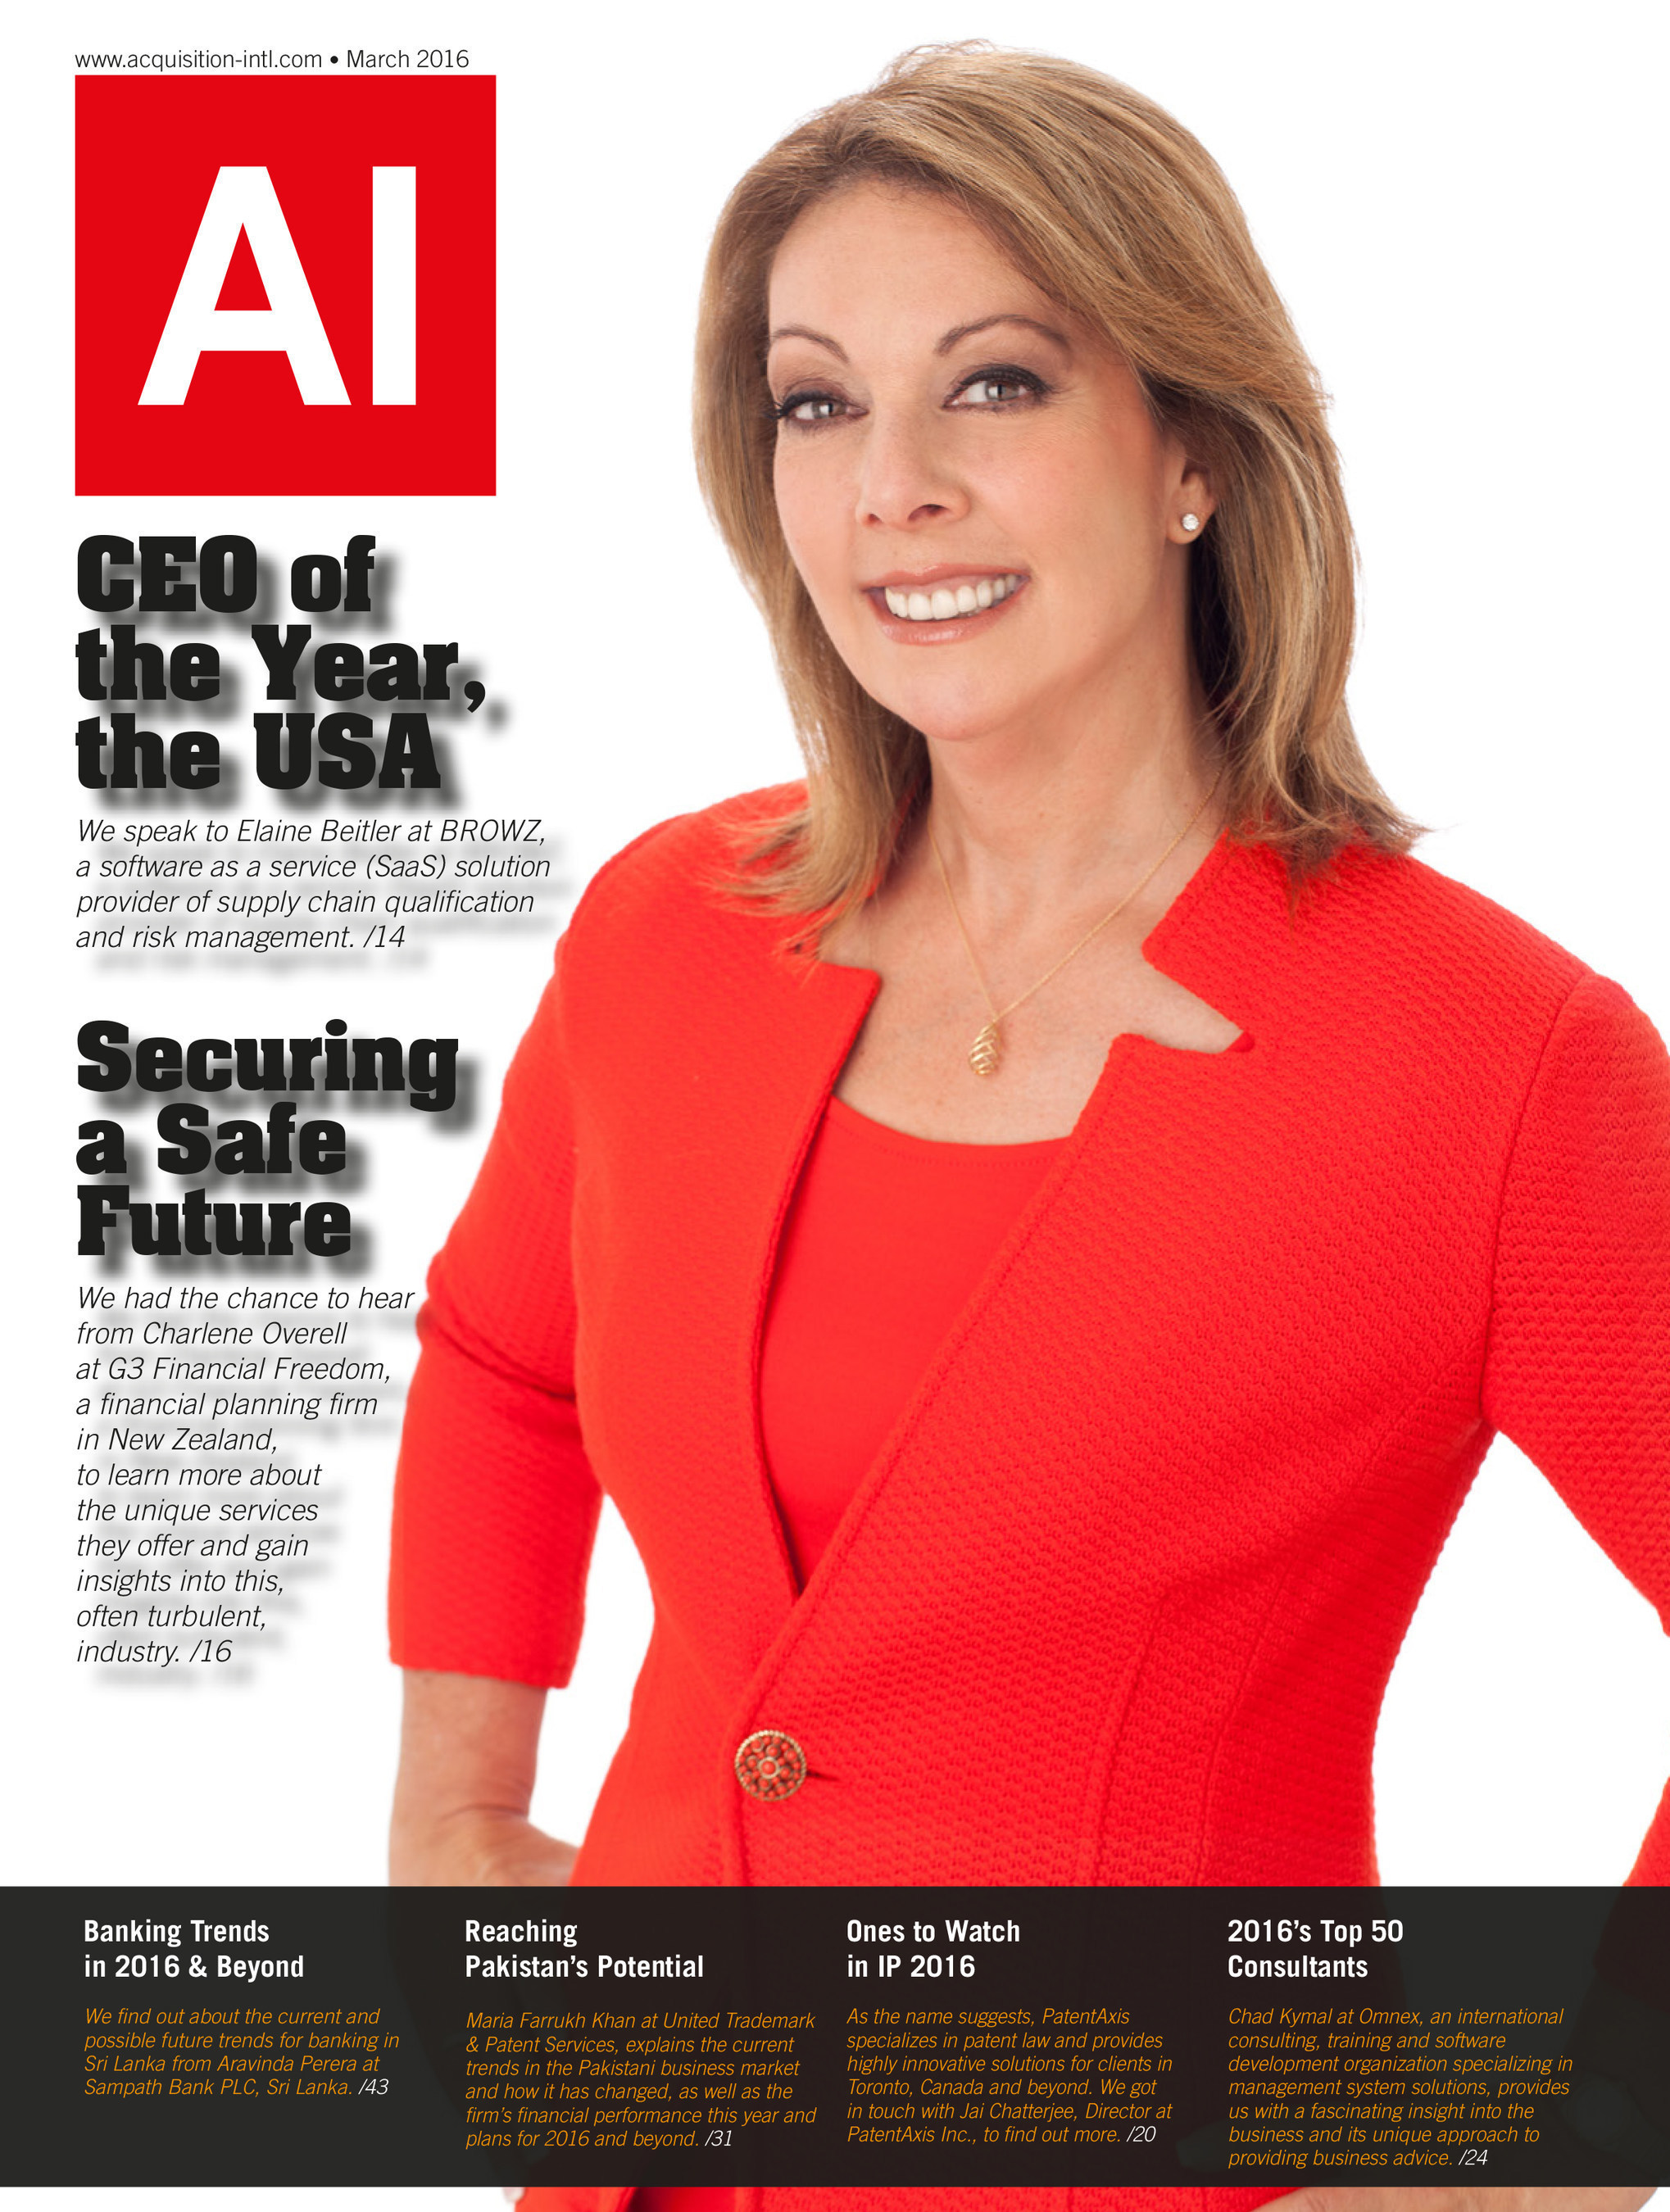 Elaine Beitler, CEO of BROWZ, has been named Overall CEO of the Year by Acquisition International. Learn more at www.BROWZ.com.